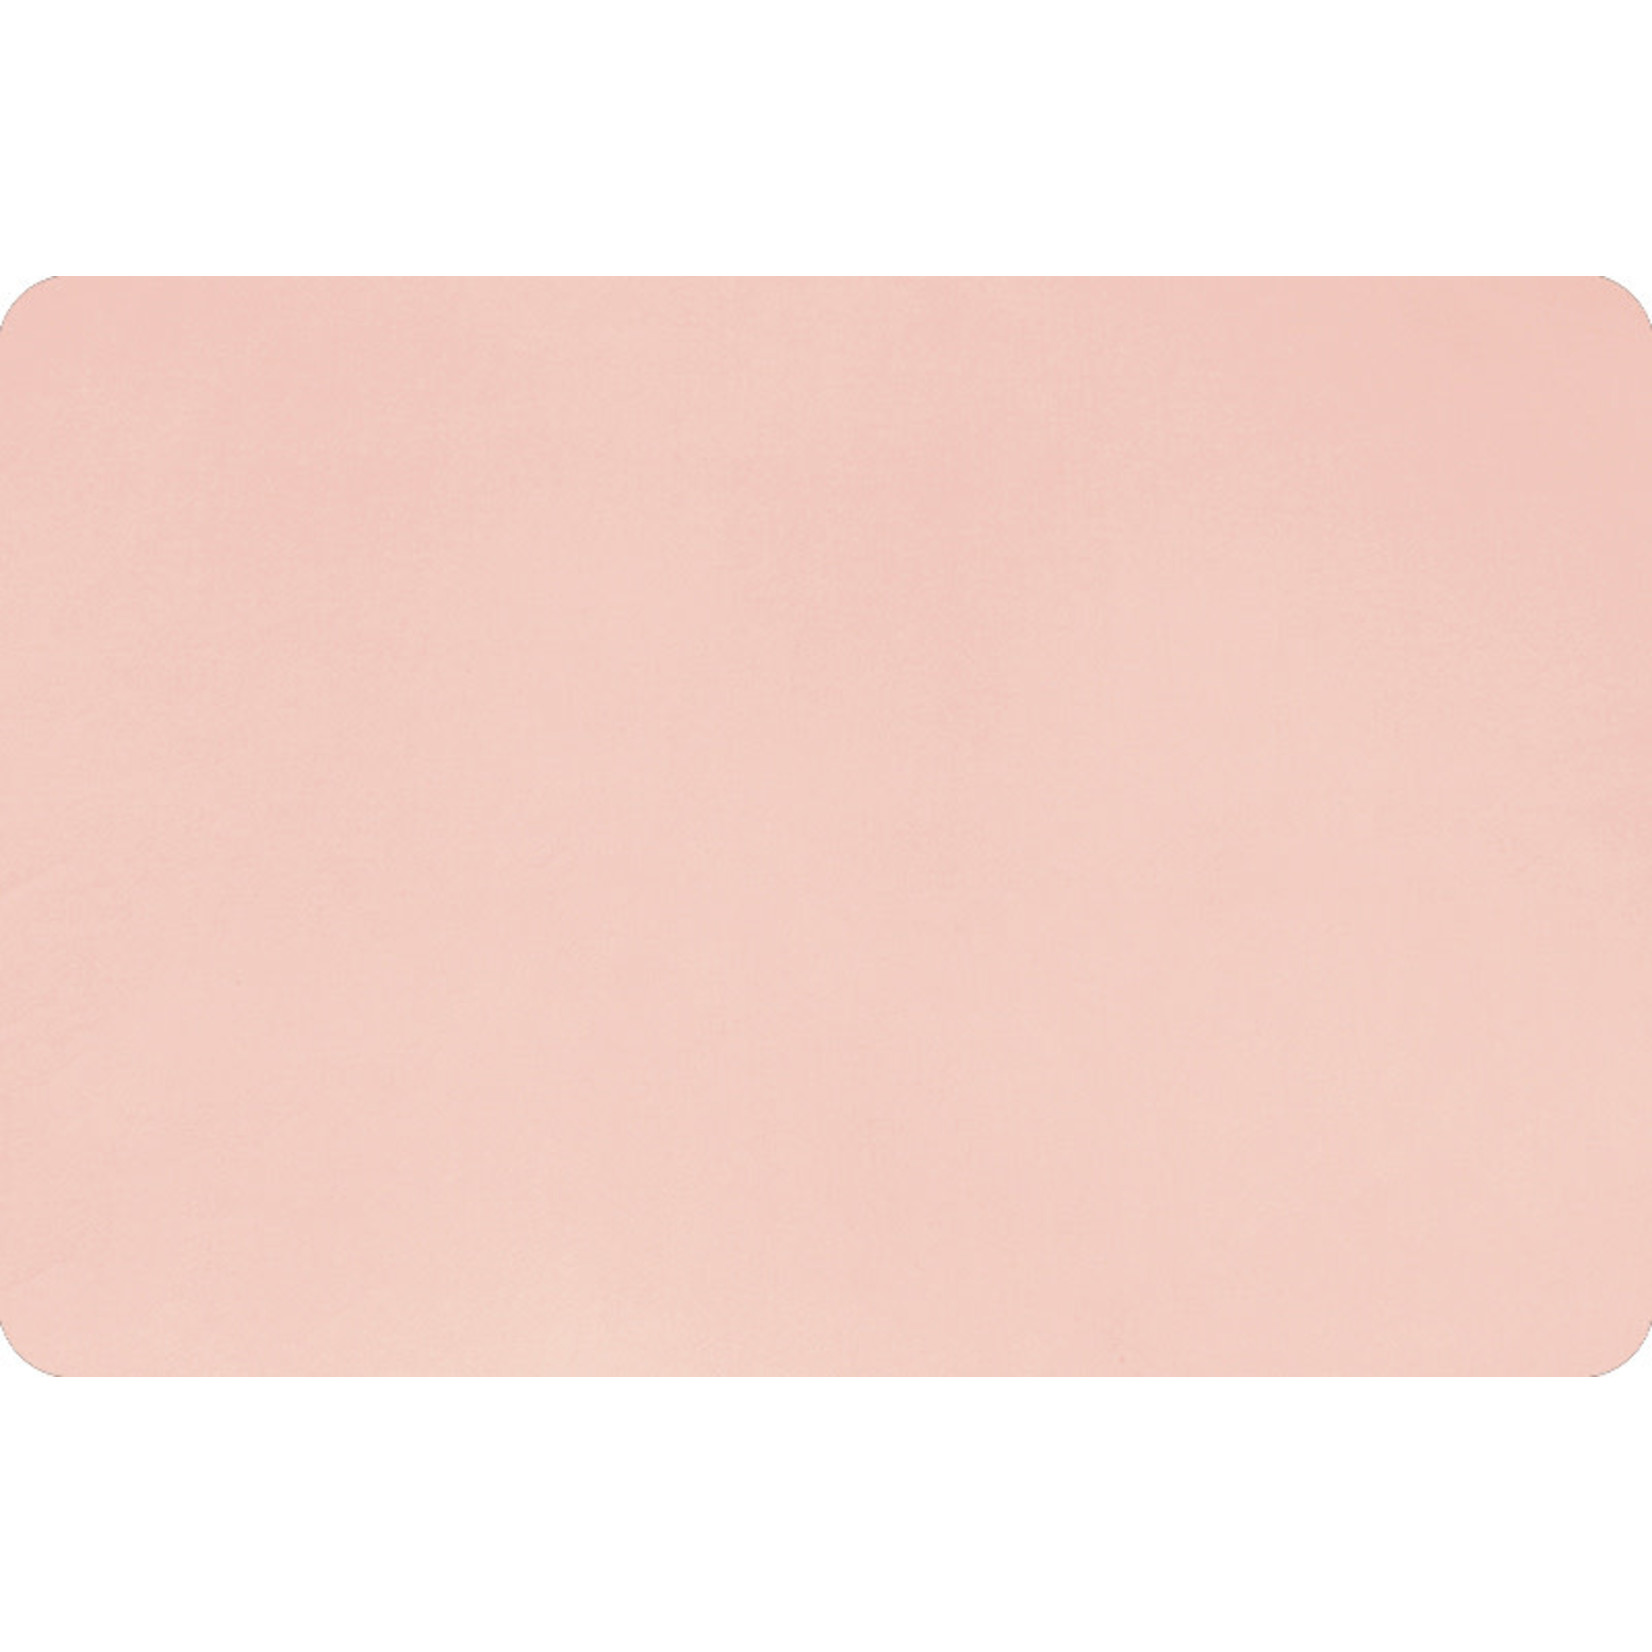 """Shannon Fabrics Minky, Extra Wide Solid Cuddle3, 90"""" Baby Pink, (by the inch)"""